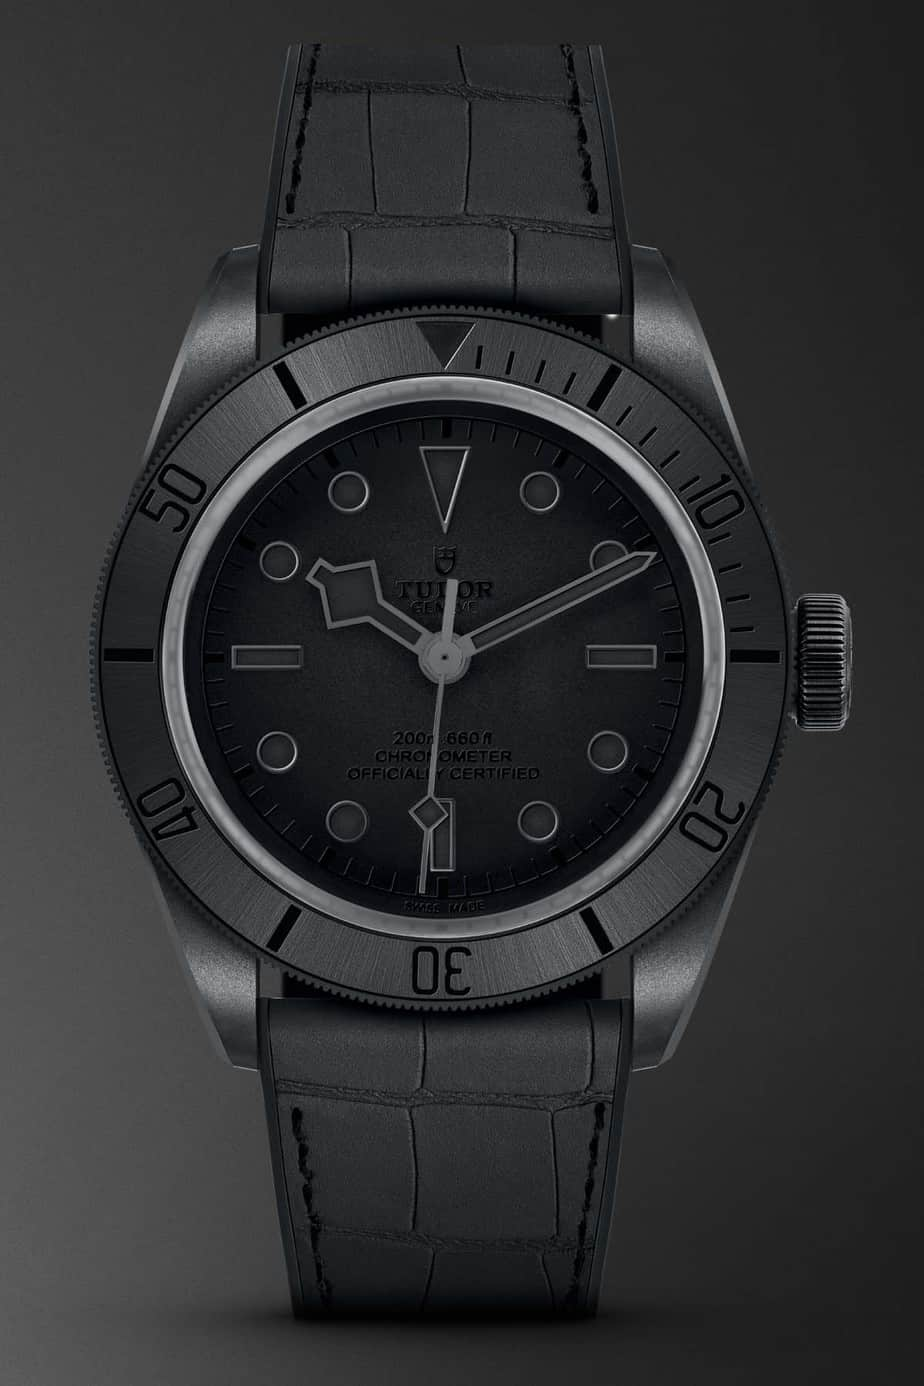 tudor black bay PVD ceramic only watch 2019